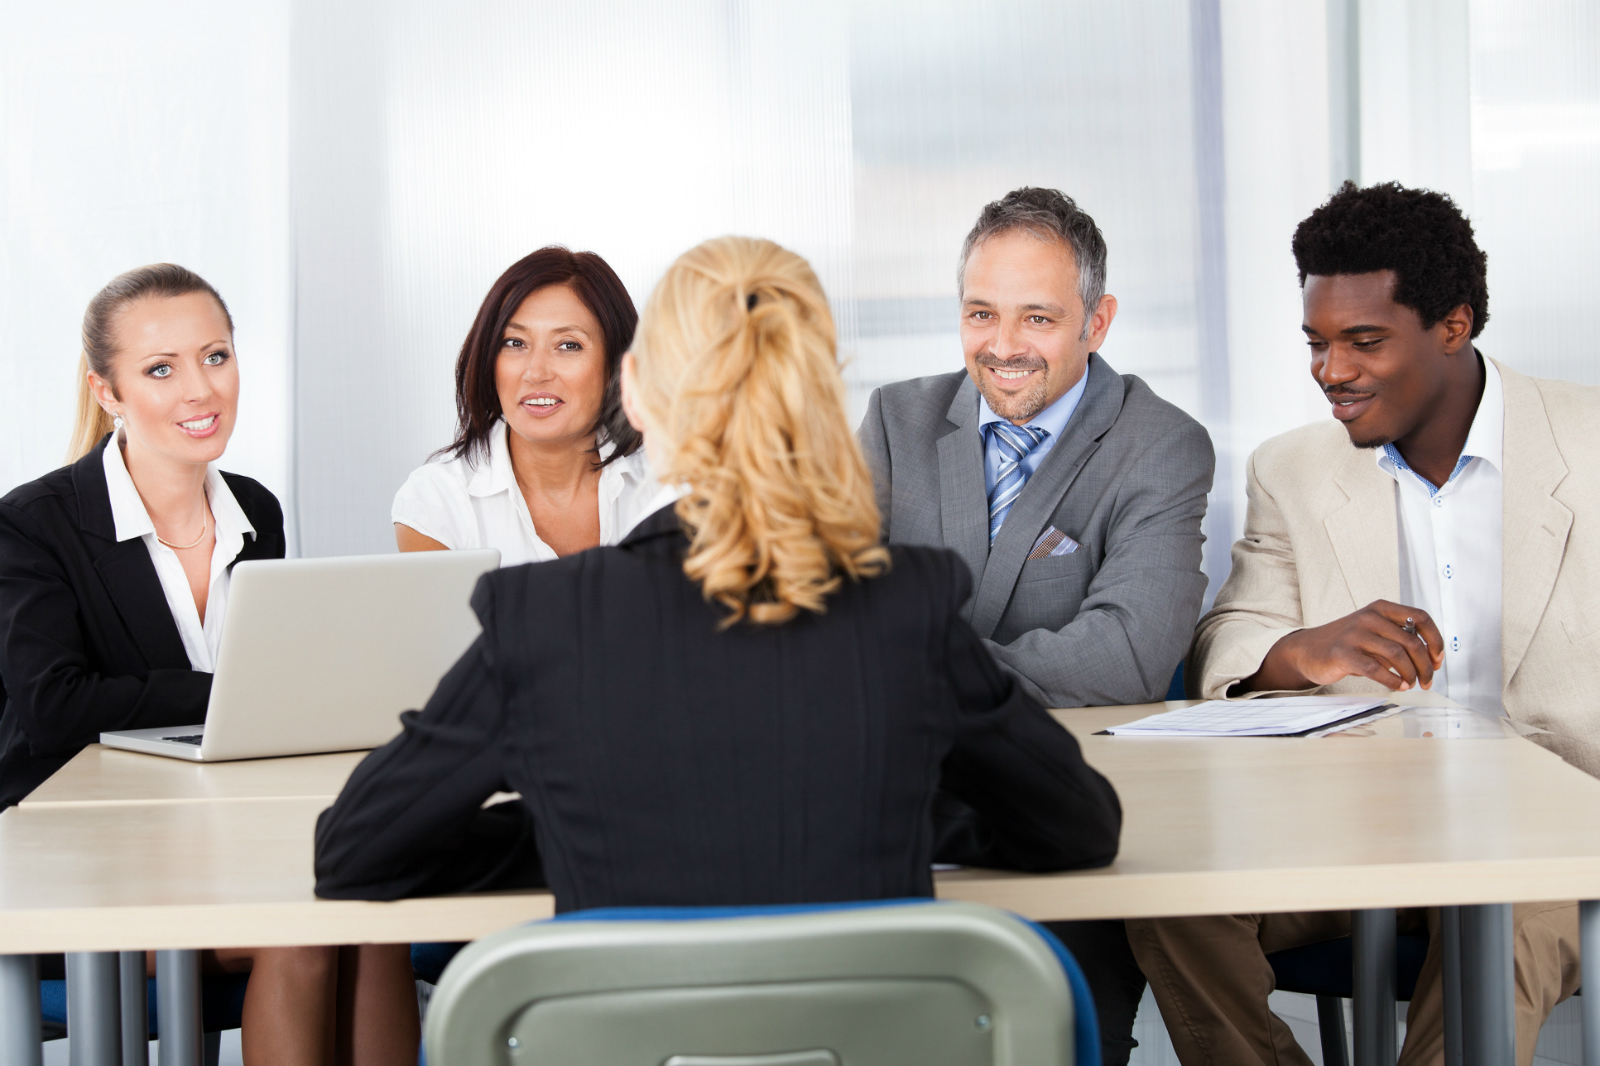 Tips on Making a Good Impression at an Interview